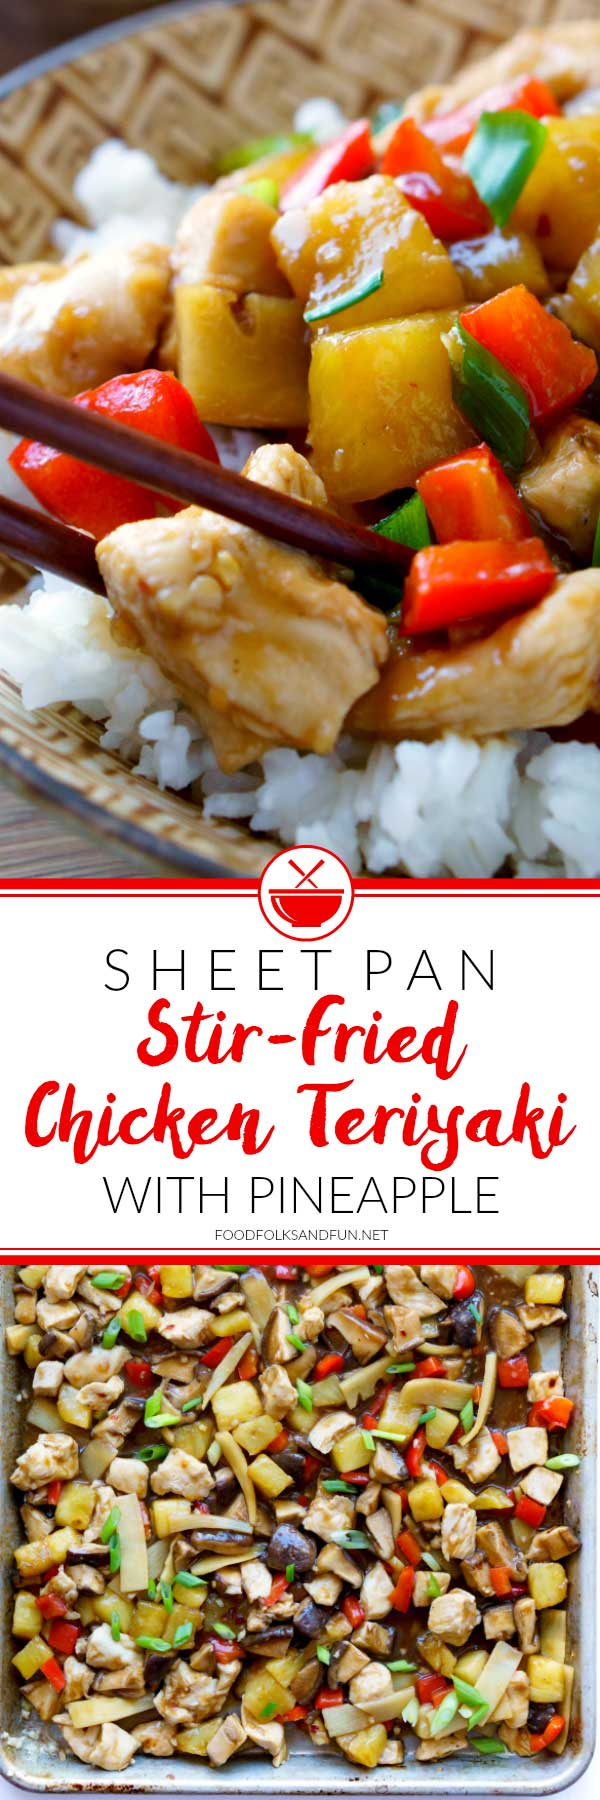 Sheet pan recipes are quick, easy, and all the rage. This Sheet Pan Stir-Fried Chicken Teriyaki with Pineapple is so flavorful, and just the thing for busy weeknights!